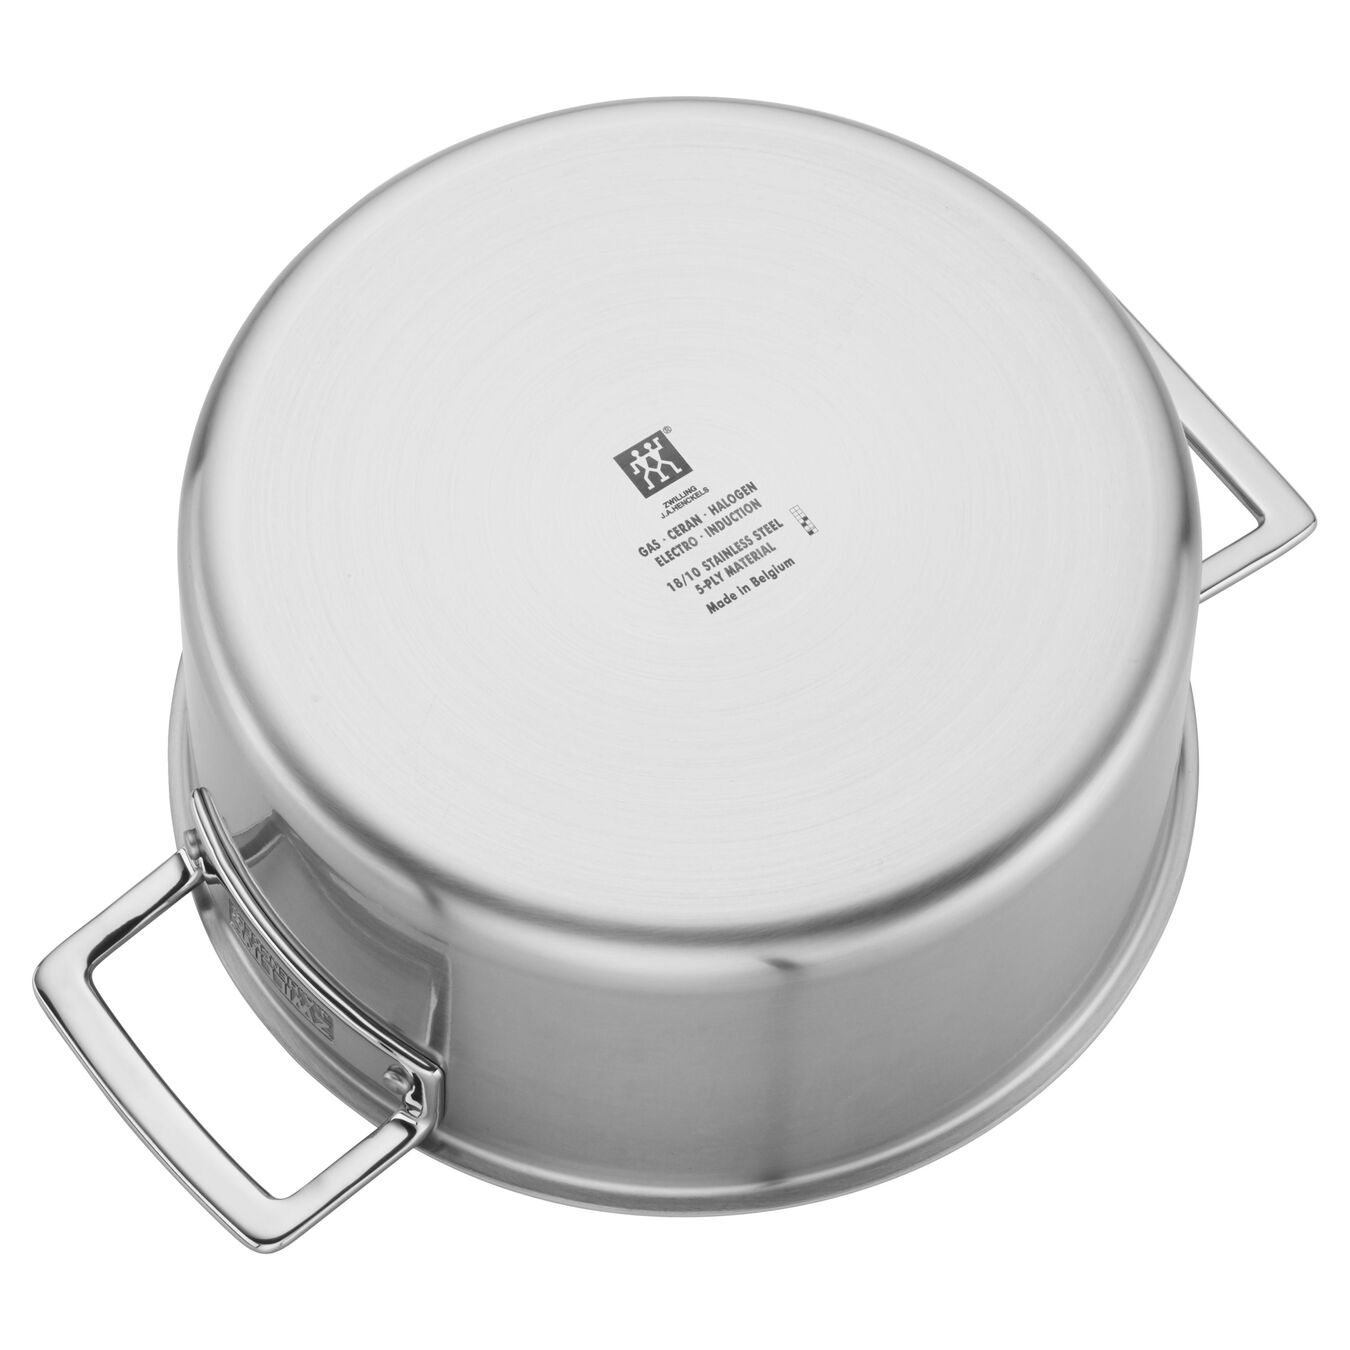 5.2 l 18/10 Stainless Steel Stock pot,,large 4